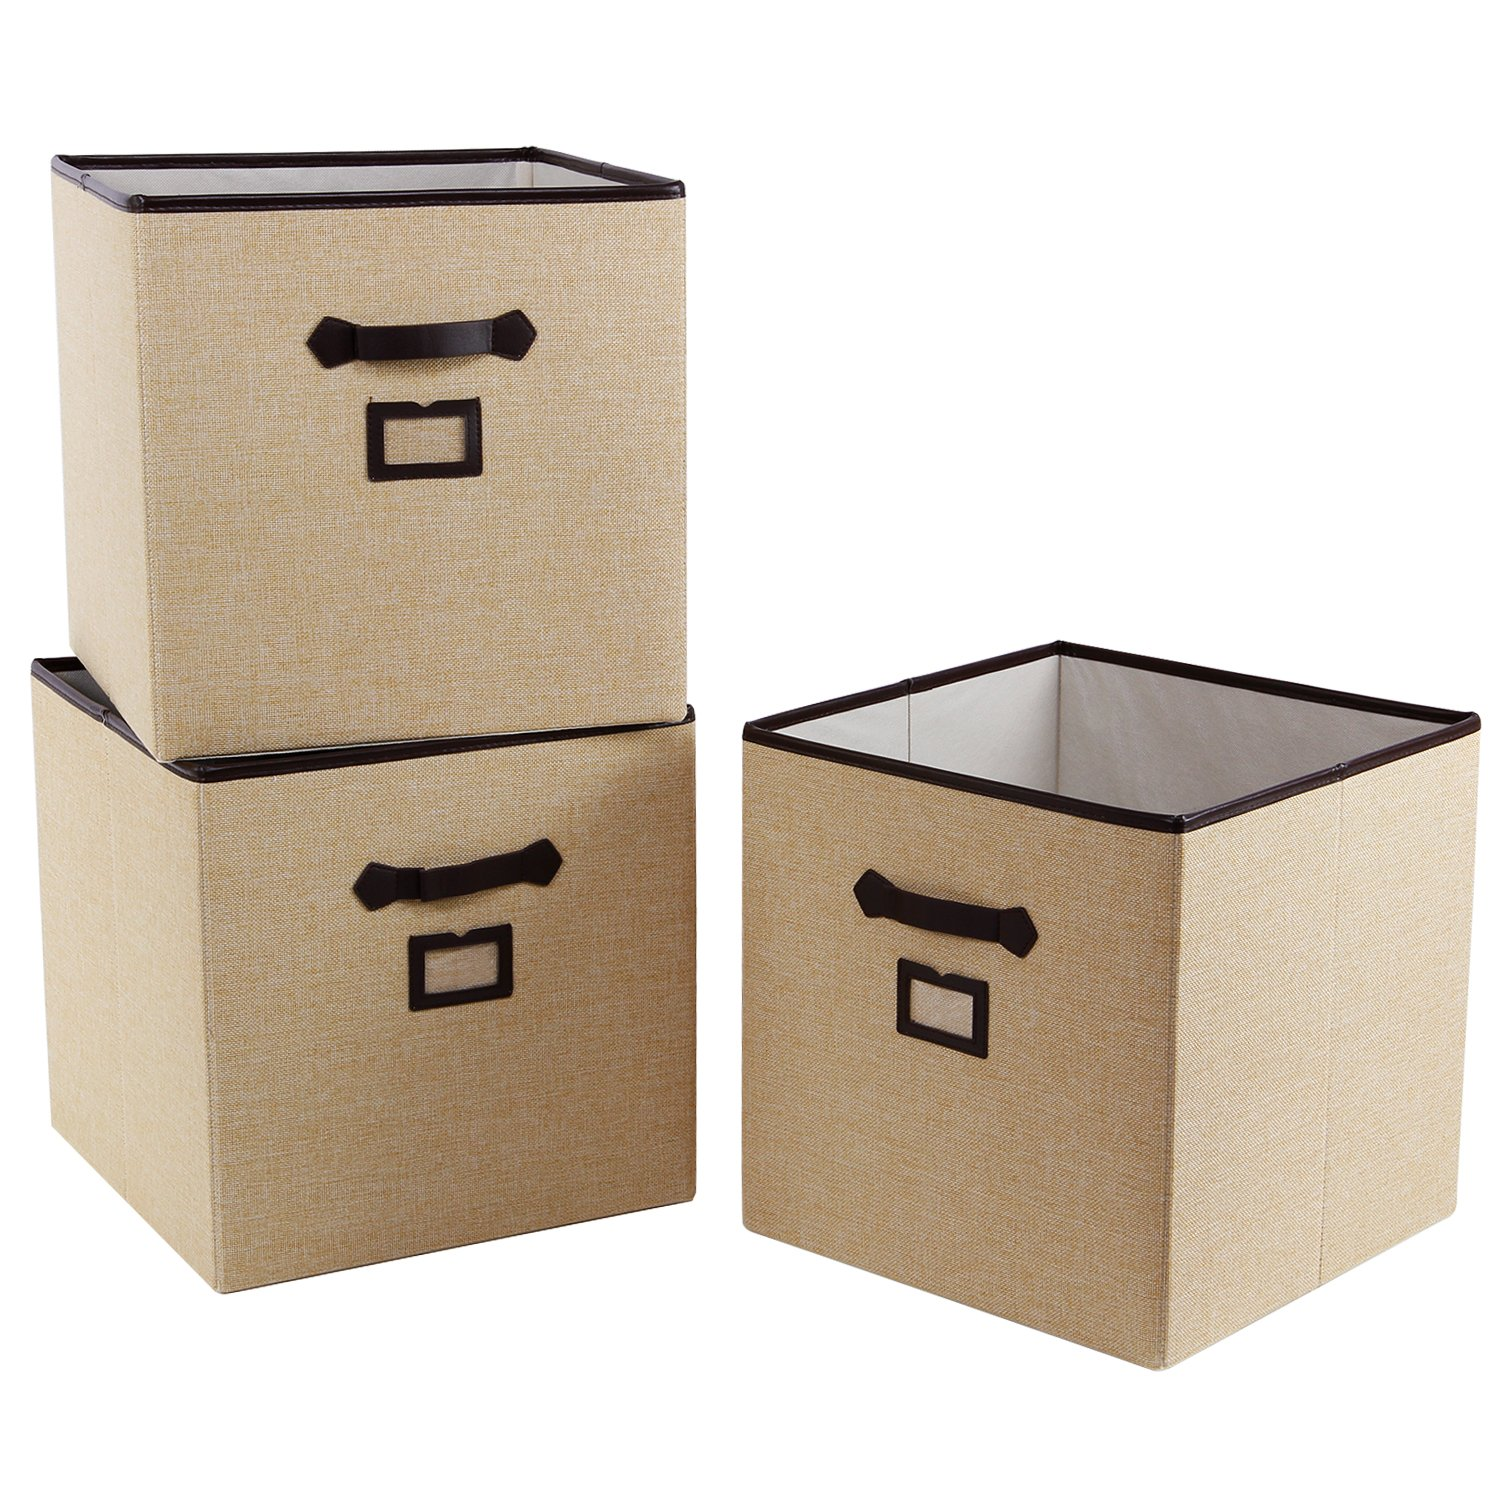 """Lifewit Polyester 13"""" Cube Storage Bins with Label Holder Foldable Storage Baskets Containers for Shelves, Clothes, Kid Toys"""